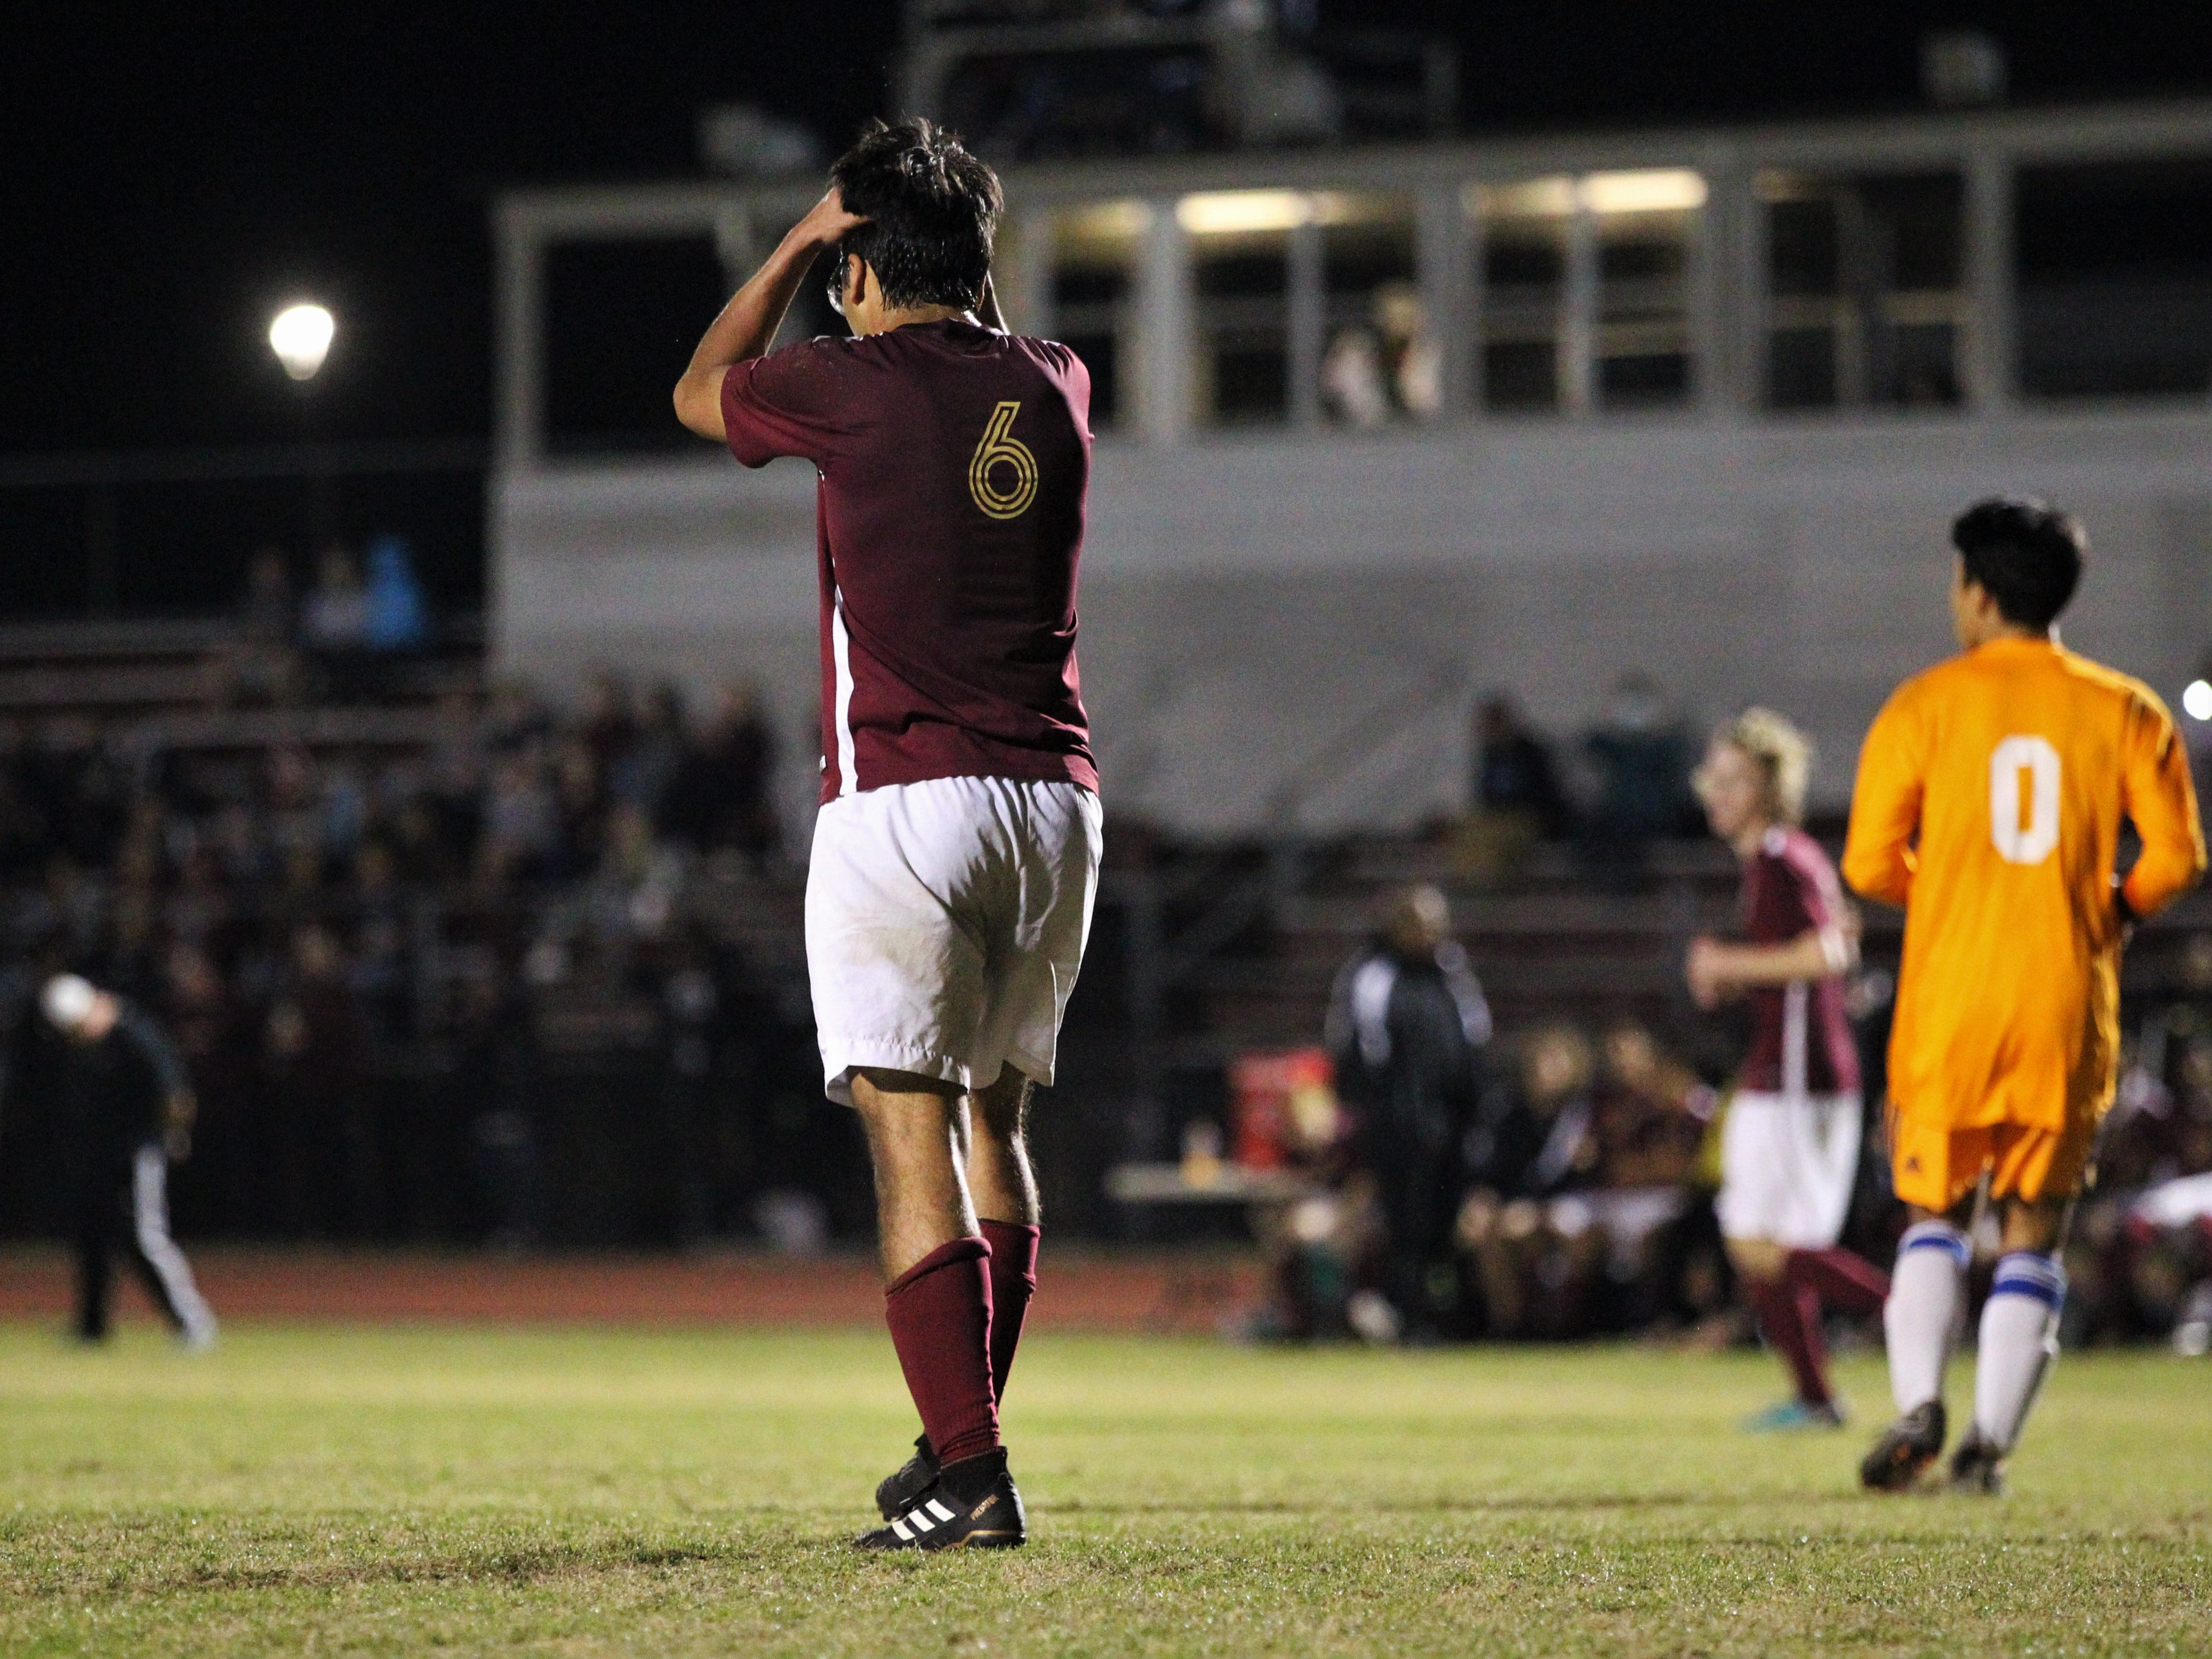 Florida High's Justin Garcia reacts to nearly scoring a goal as Florida High's boys soccer team beat South Walton 2-0 during a Region 1-2A quarterfinal on Feb. 6, 2018.